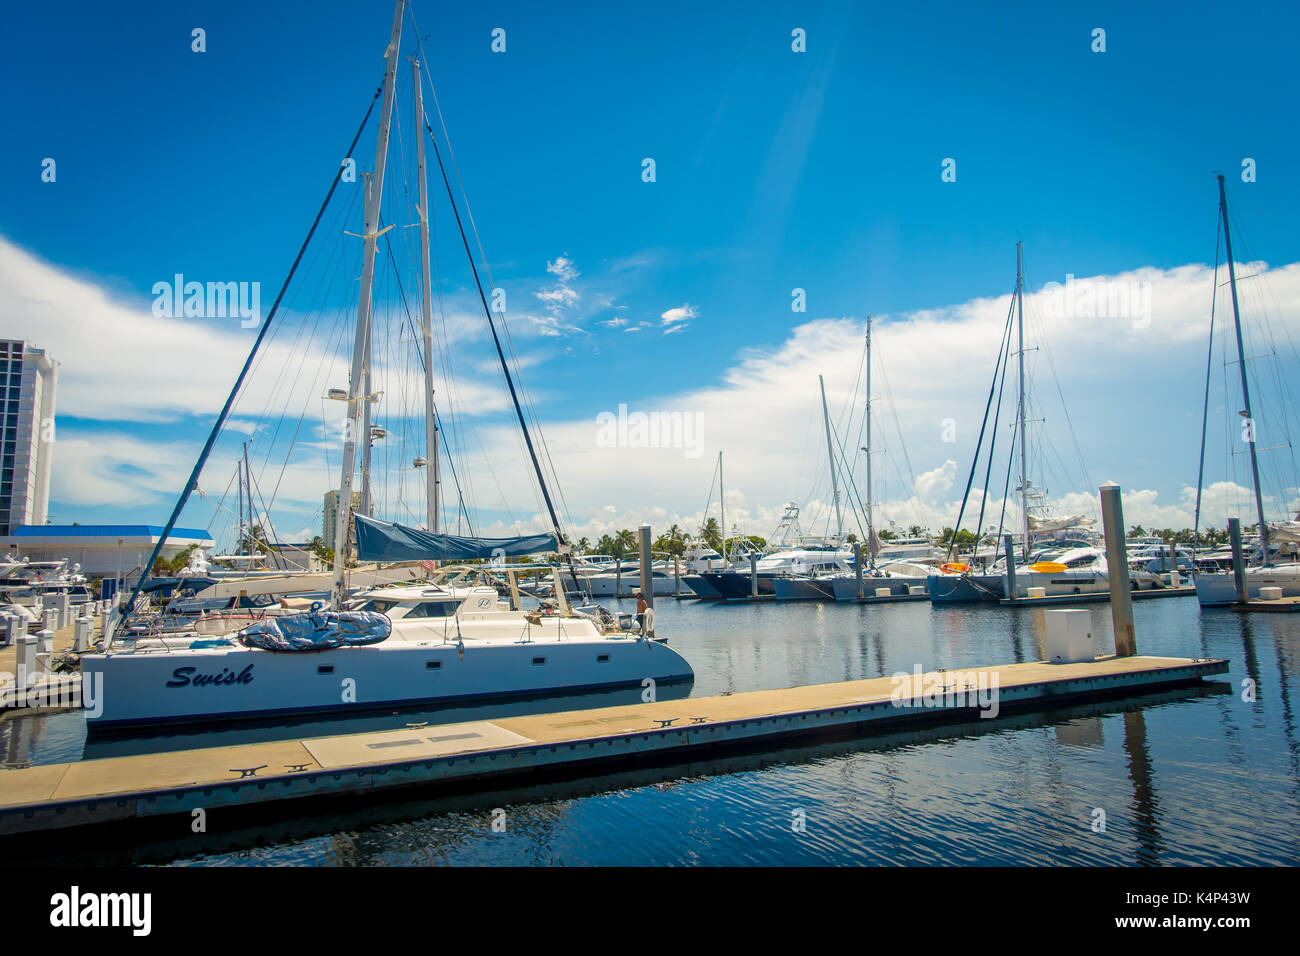 FORT LAUDERDALE, USA - JULY 11, 2017: A line of boats displayed for sale at the Fort Lauderdale Stock Photo